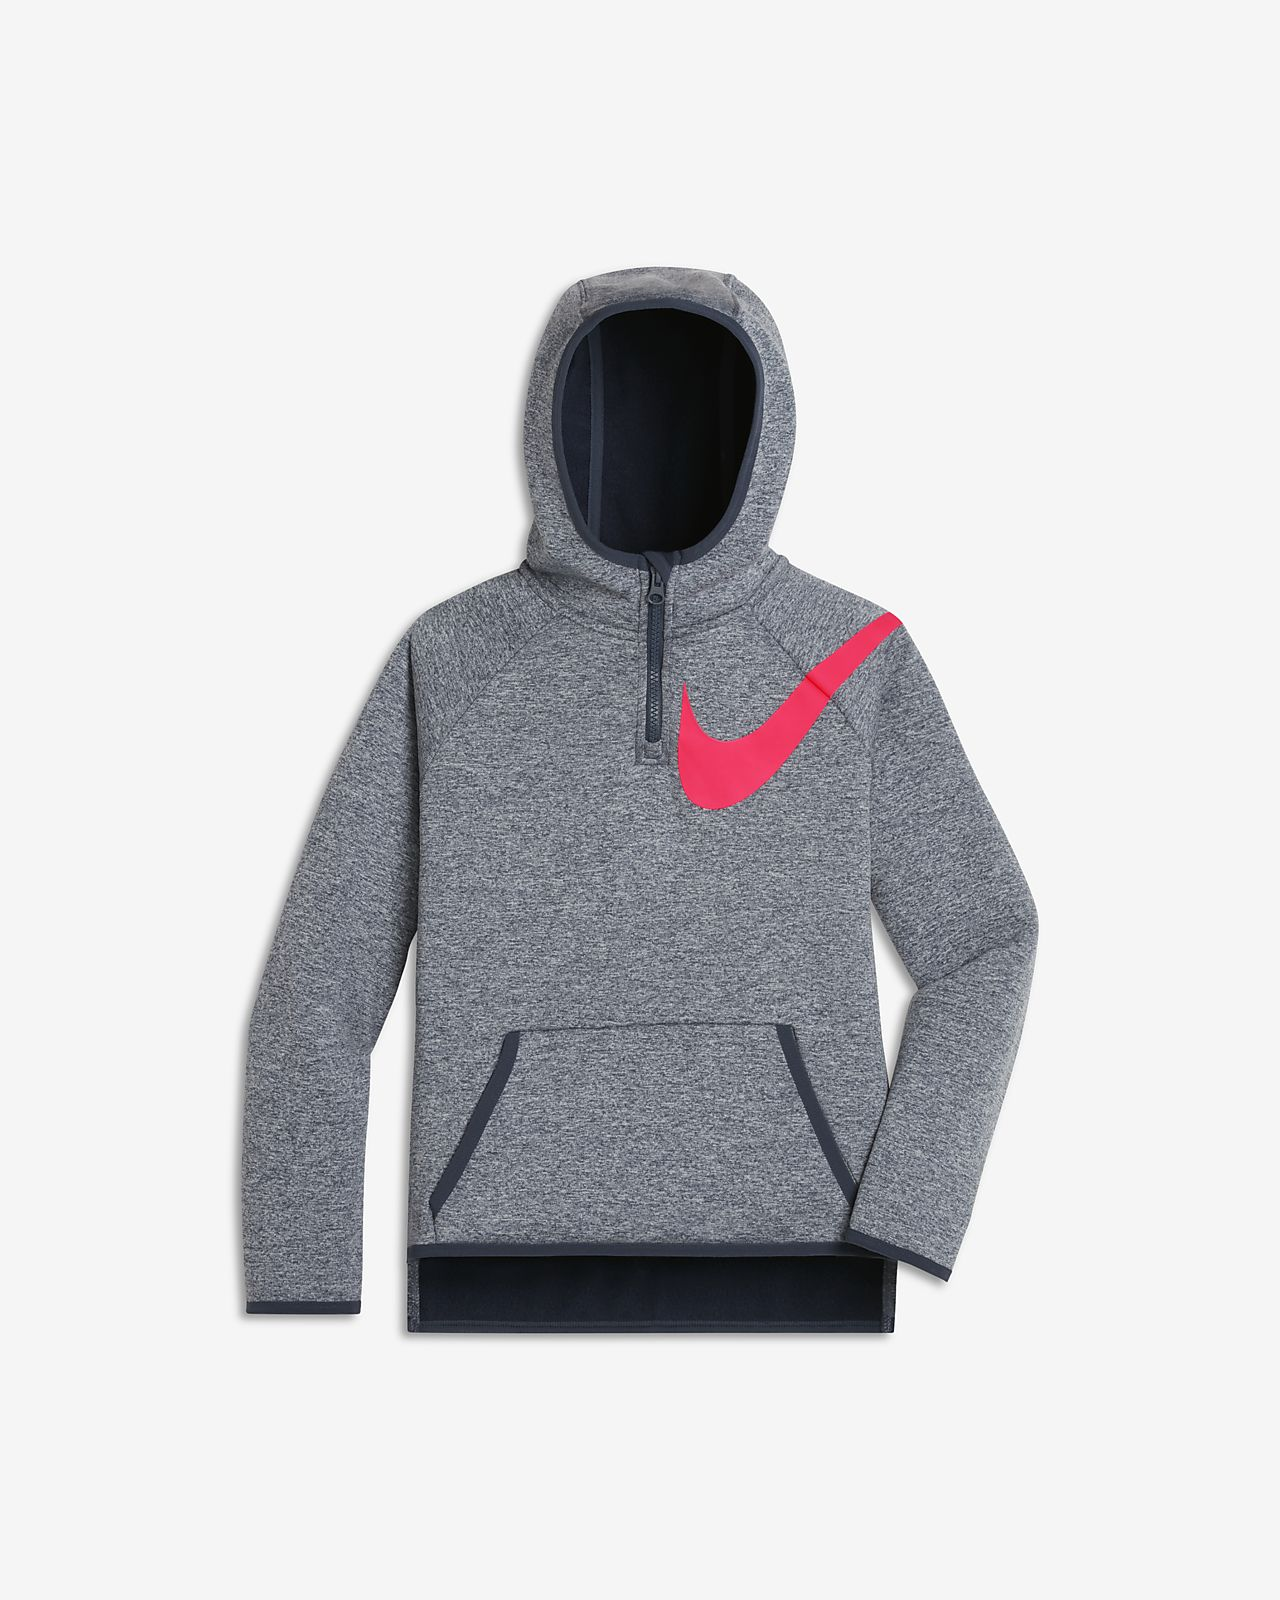 Buy nike hoodie kids 2015   up to 40% Discounts dc410c8df4